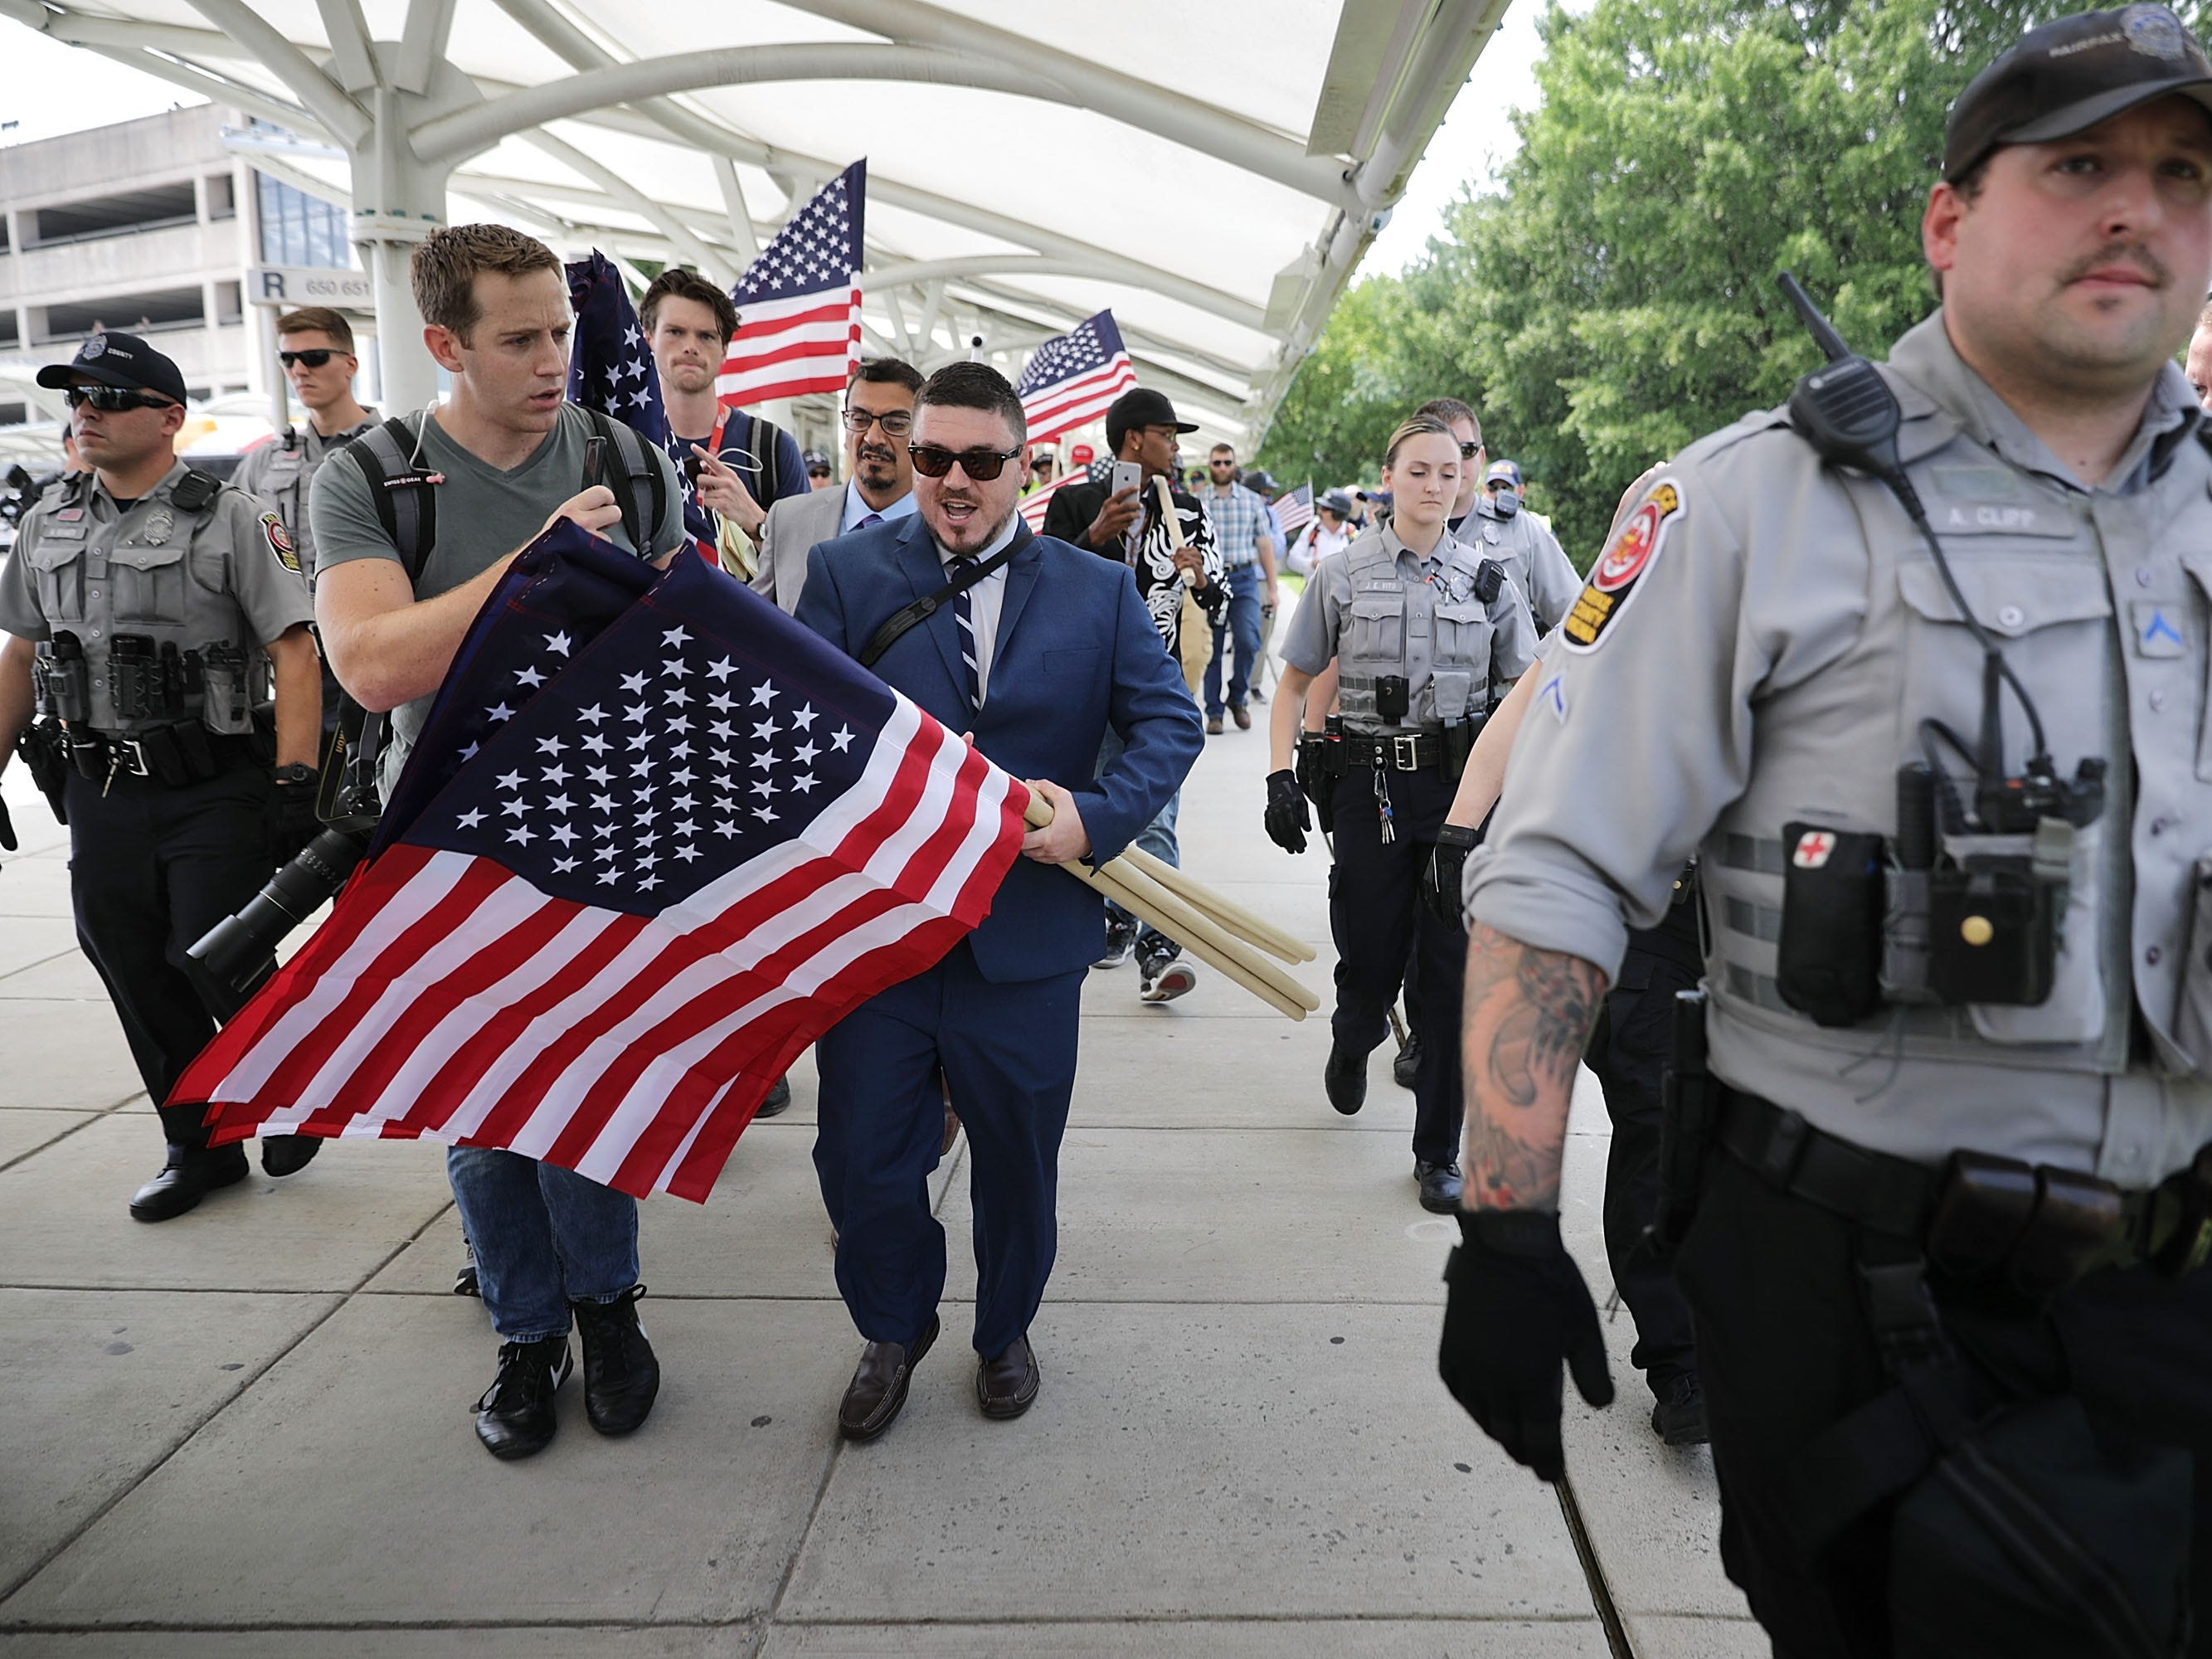 "Surrounded by his supporters, reporters and Fairfax County Police, Jason Kessler, center,  walks toward the Vienna/Fairfax  GMU Metro Station to travel by train to the White House for his white supremacist ""Unite the Right"" rally Aug. 12, 2018 in Vienna, Va. Thousands of protesters are expected to demonstrate against the ""white civil rights"" rally in Washington, which was planned by the organizer of last year's deadly rally in Charlottesville, Va."